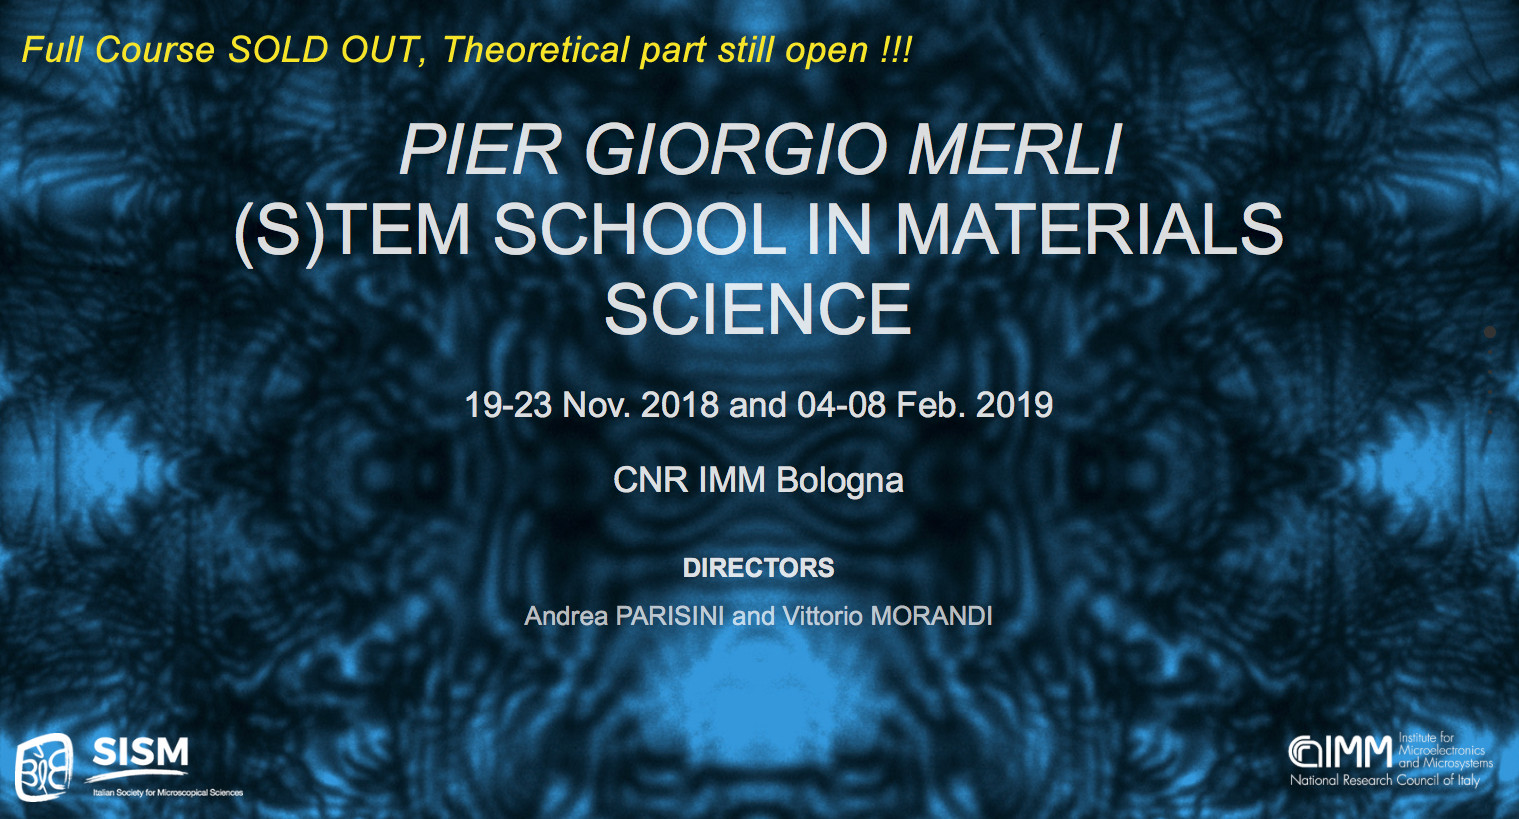 2018-2019 <i>Pier Giorgio Merli</i> (S)TEM SCHOOL IN MATERIALS SCIENCE <br>